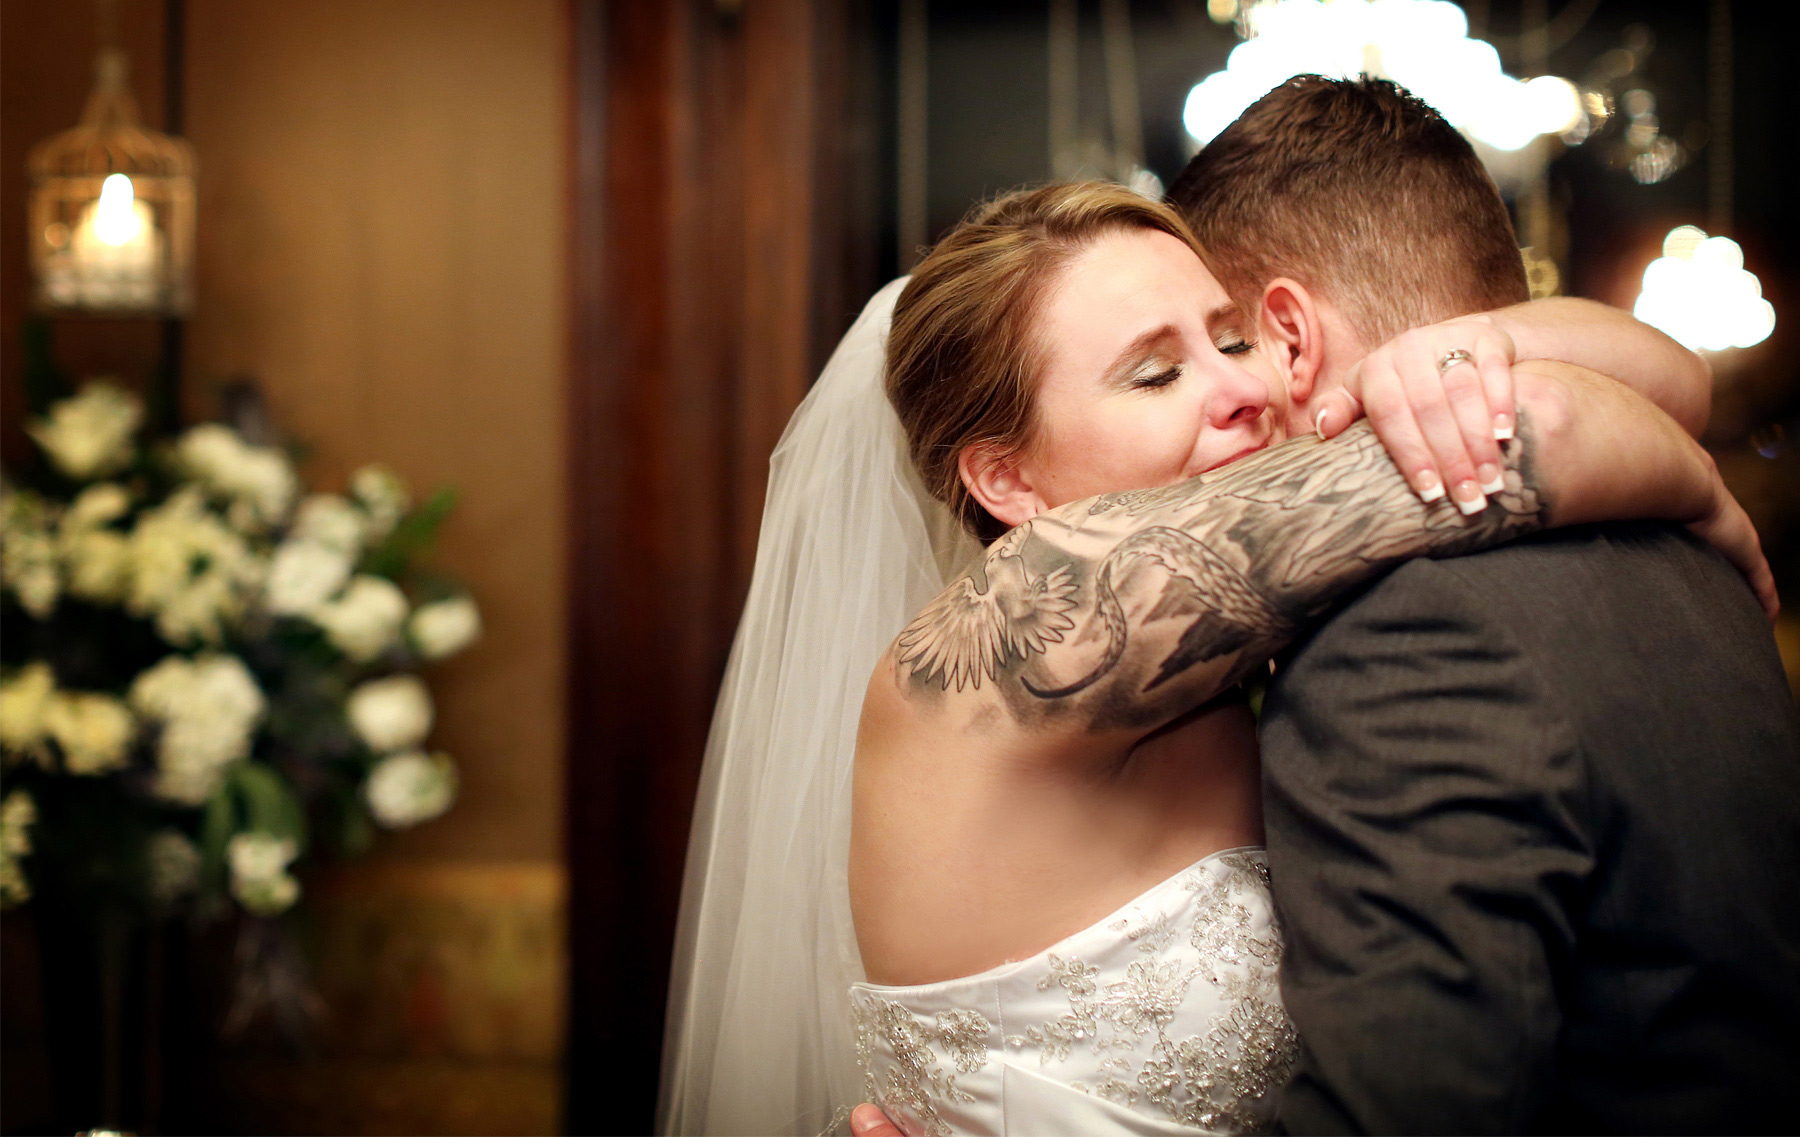 09-Minneapolis-Minnesota-Wedding-Photography-by-Vick-Photography-Semple-Mansion-Ceremony-Ariel-and-Jared.jpg